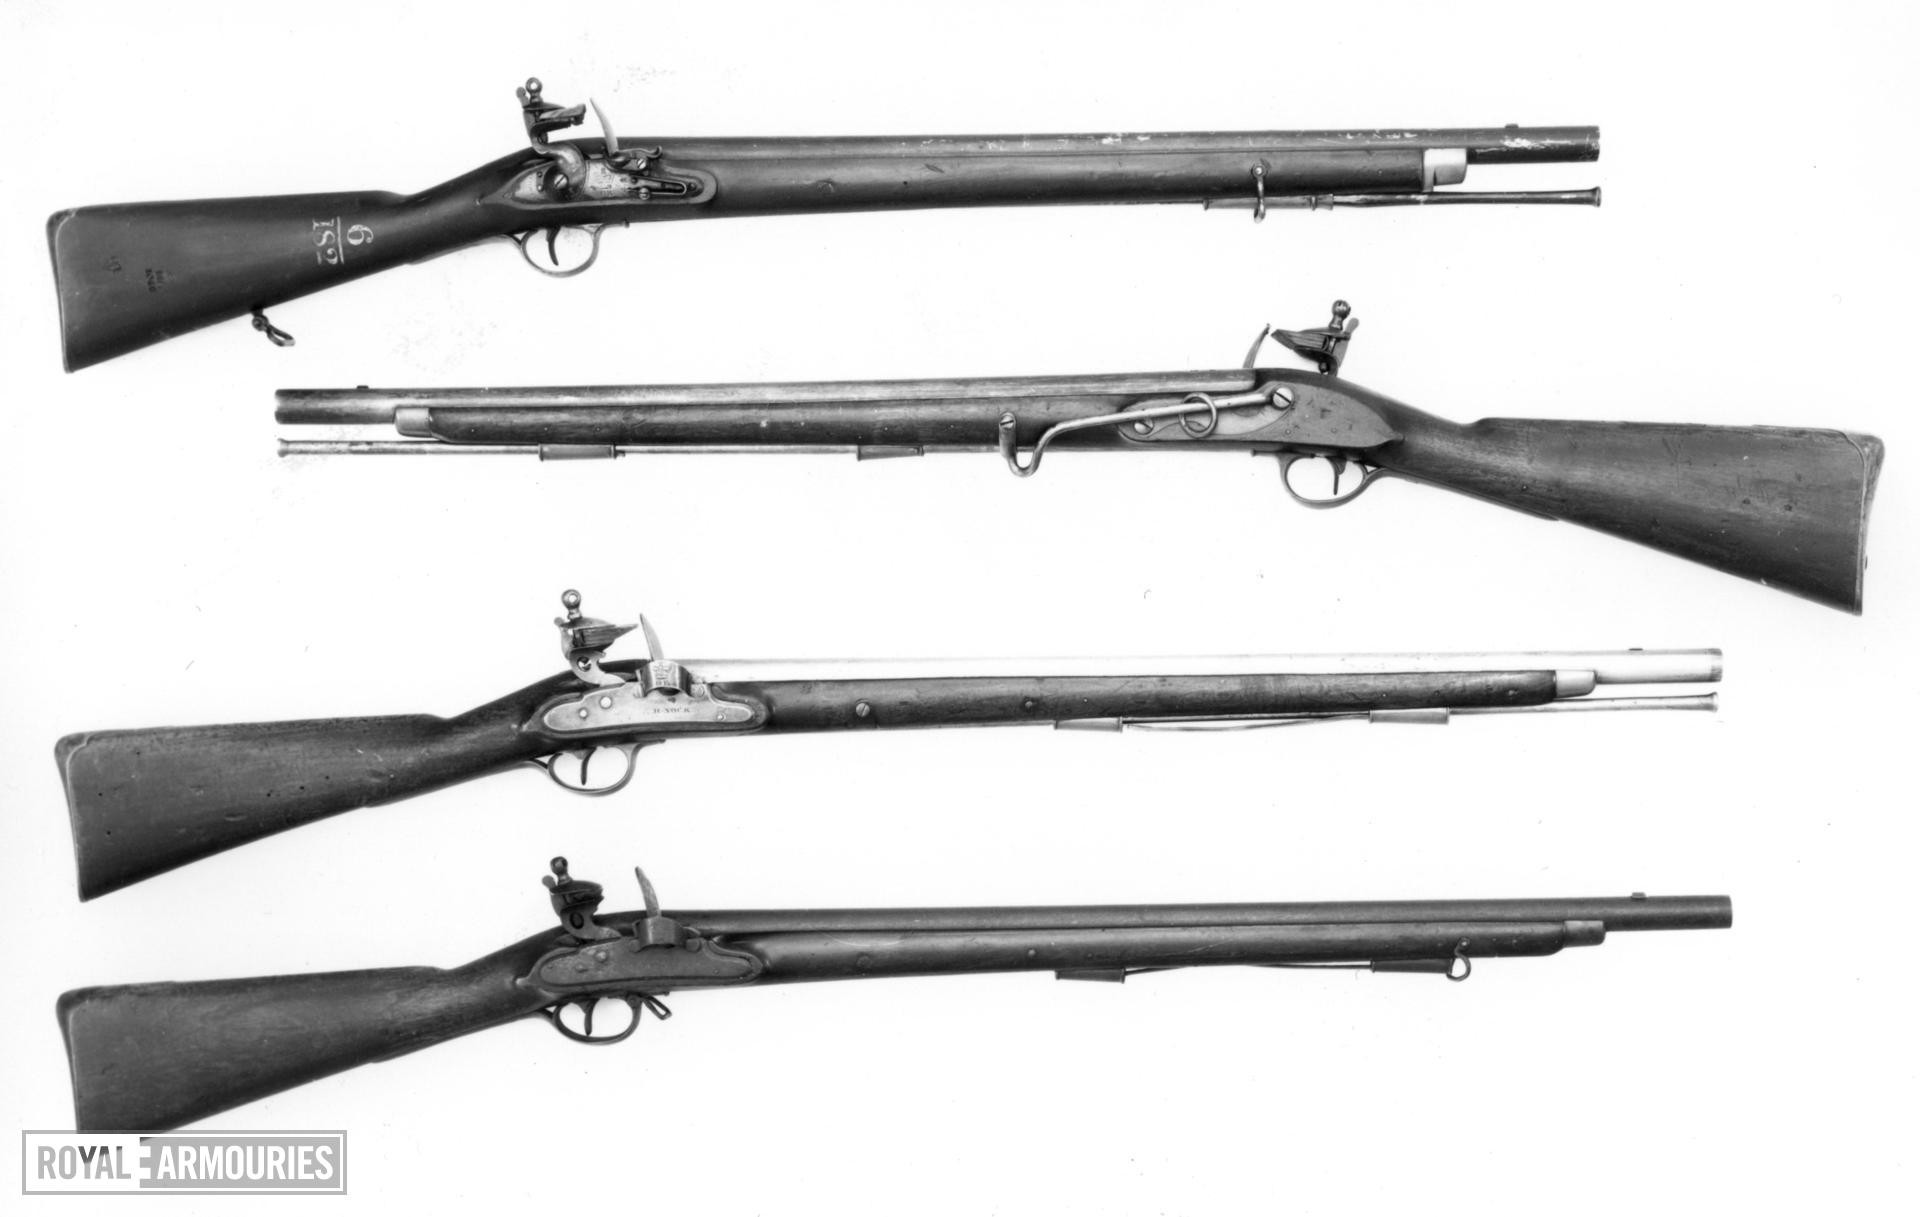 Flintlock muzzle-loading carbine - Harcourt Heavy Dragoon Carbine Pattern 1793 With Nock screwless lock